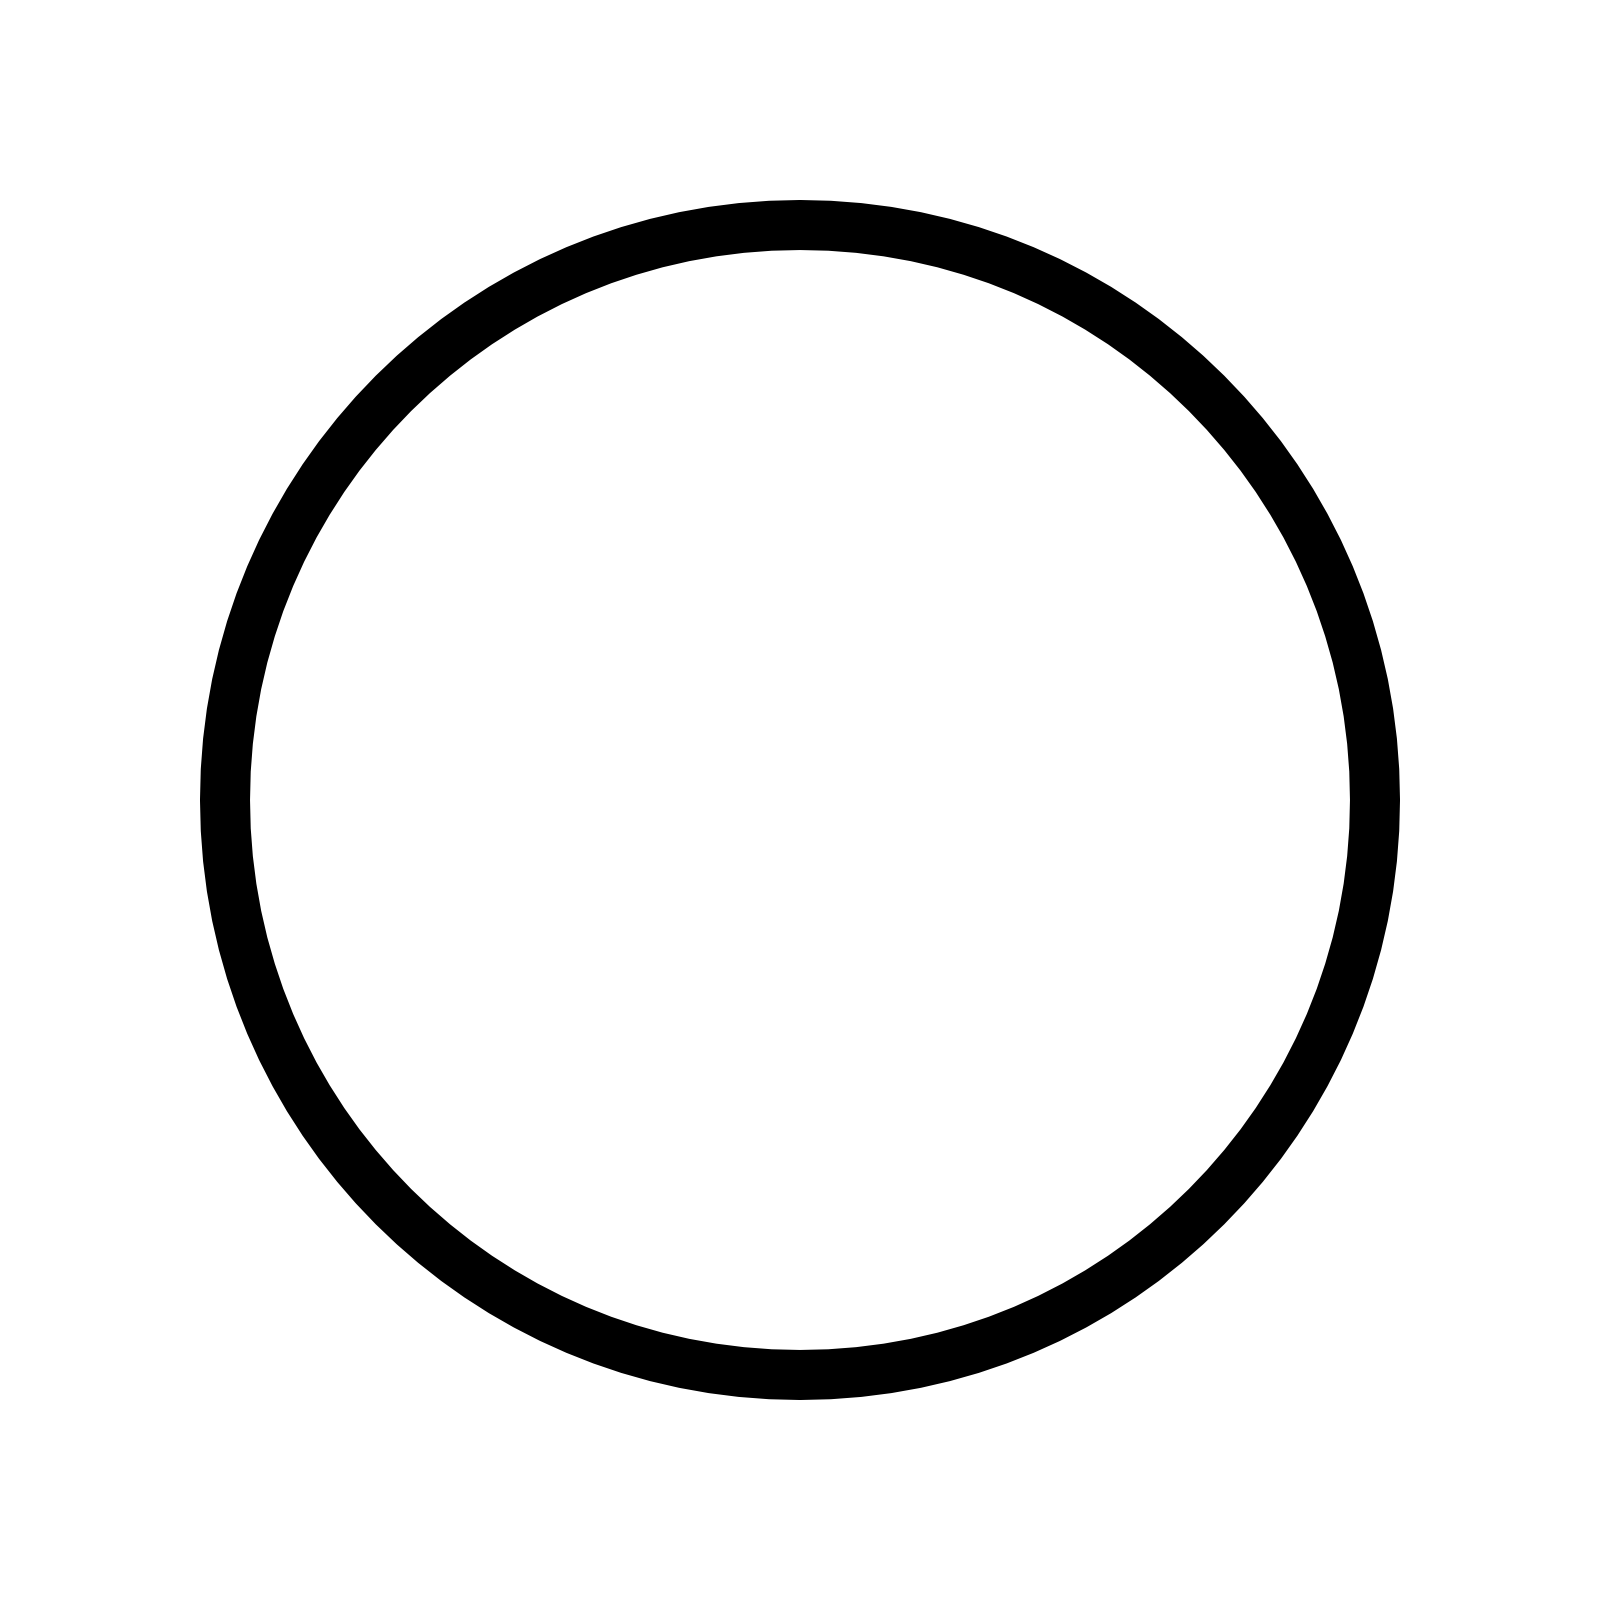 Circle Shape PNG HD